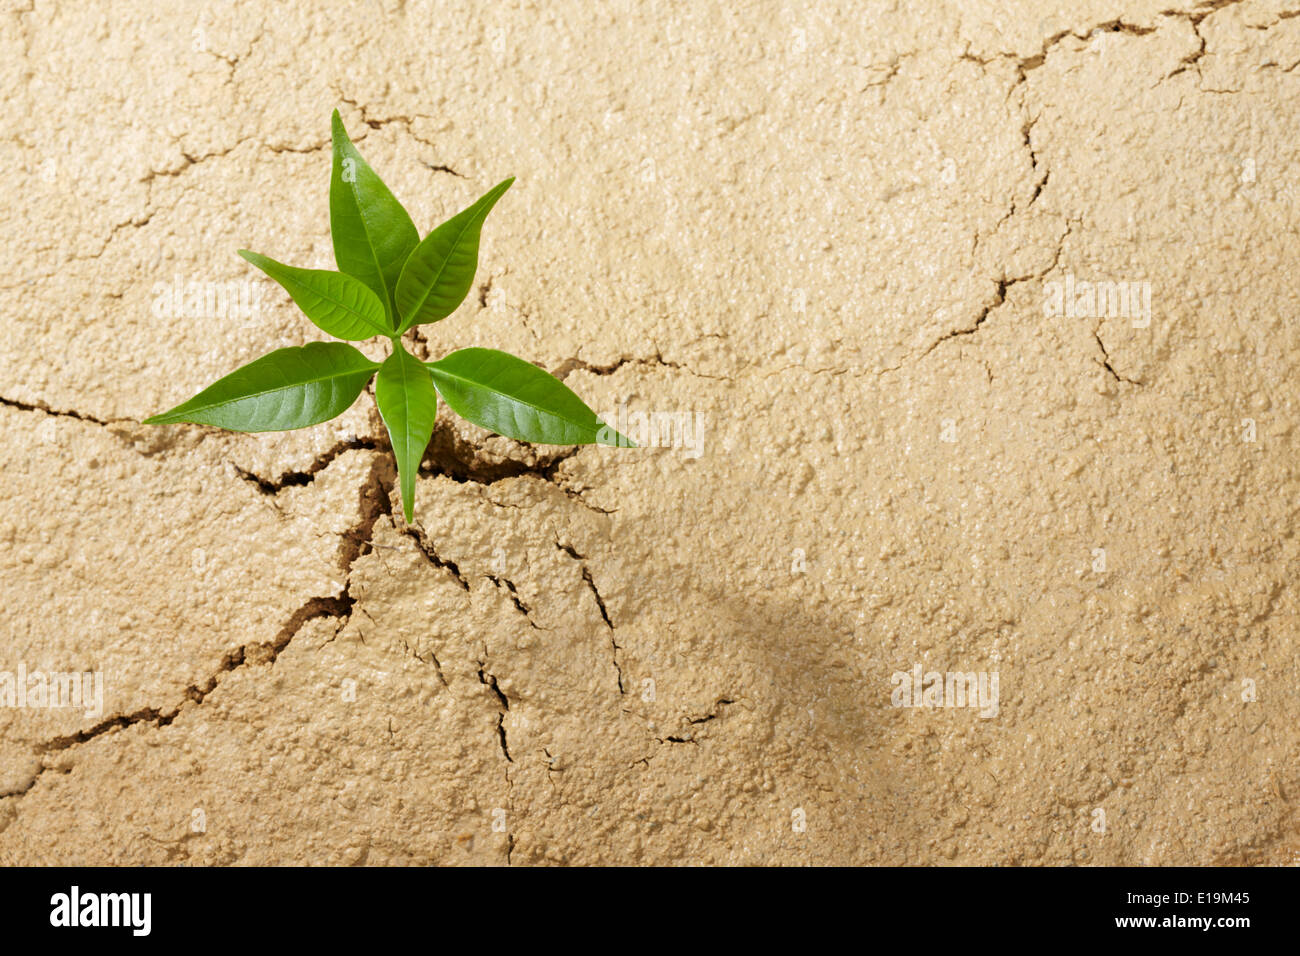 small plant breaking out from cracked soil Stock Photo